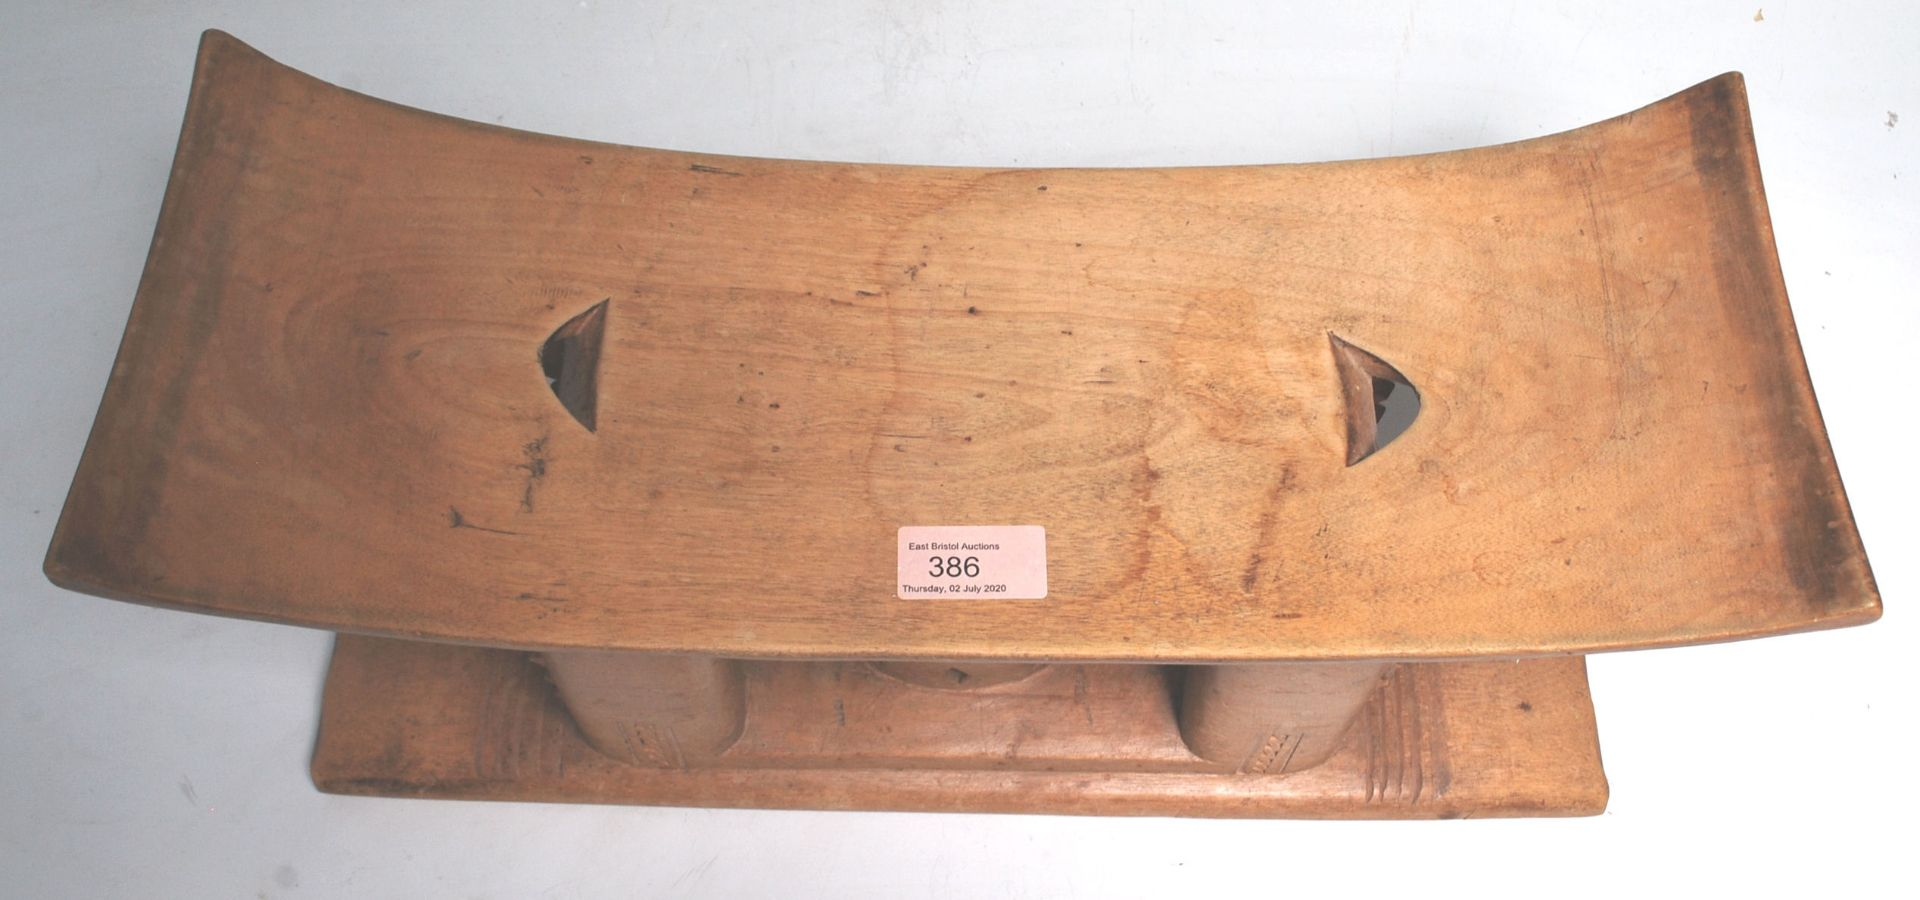 Los 386 - A carved African tribal Akan / Asante Ghanaian anthropomorphic stool having a rectangular curved...